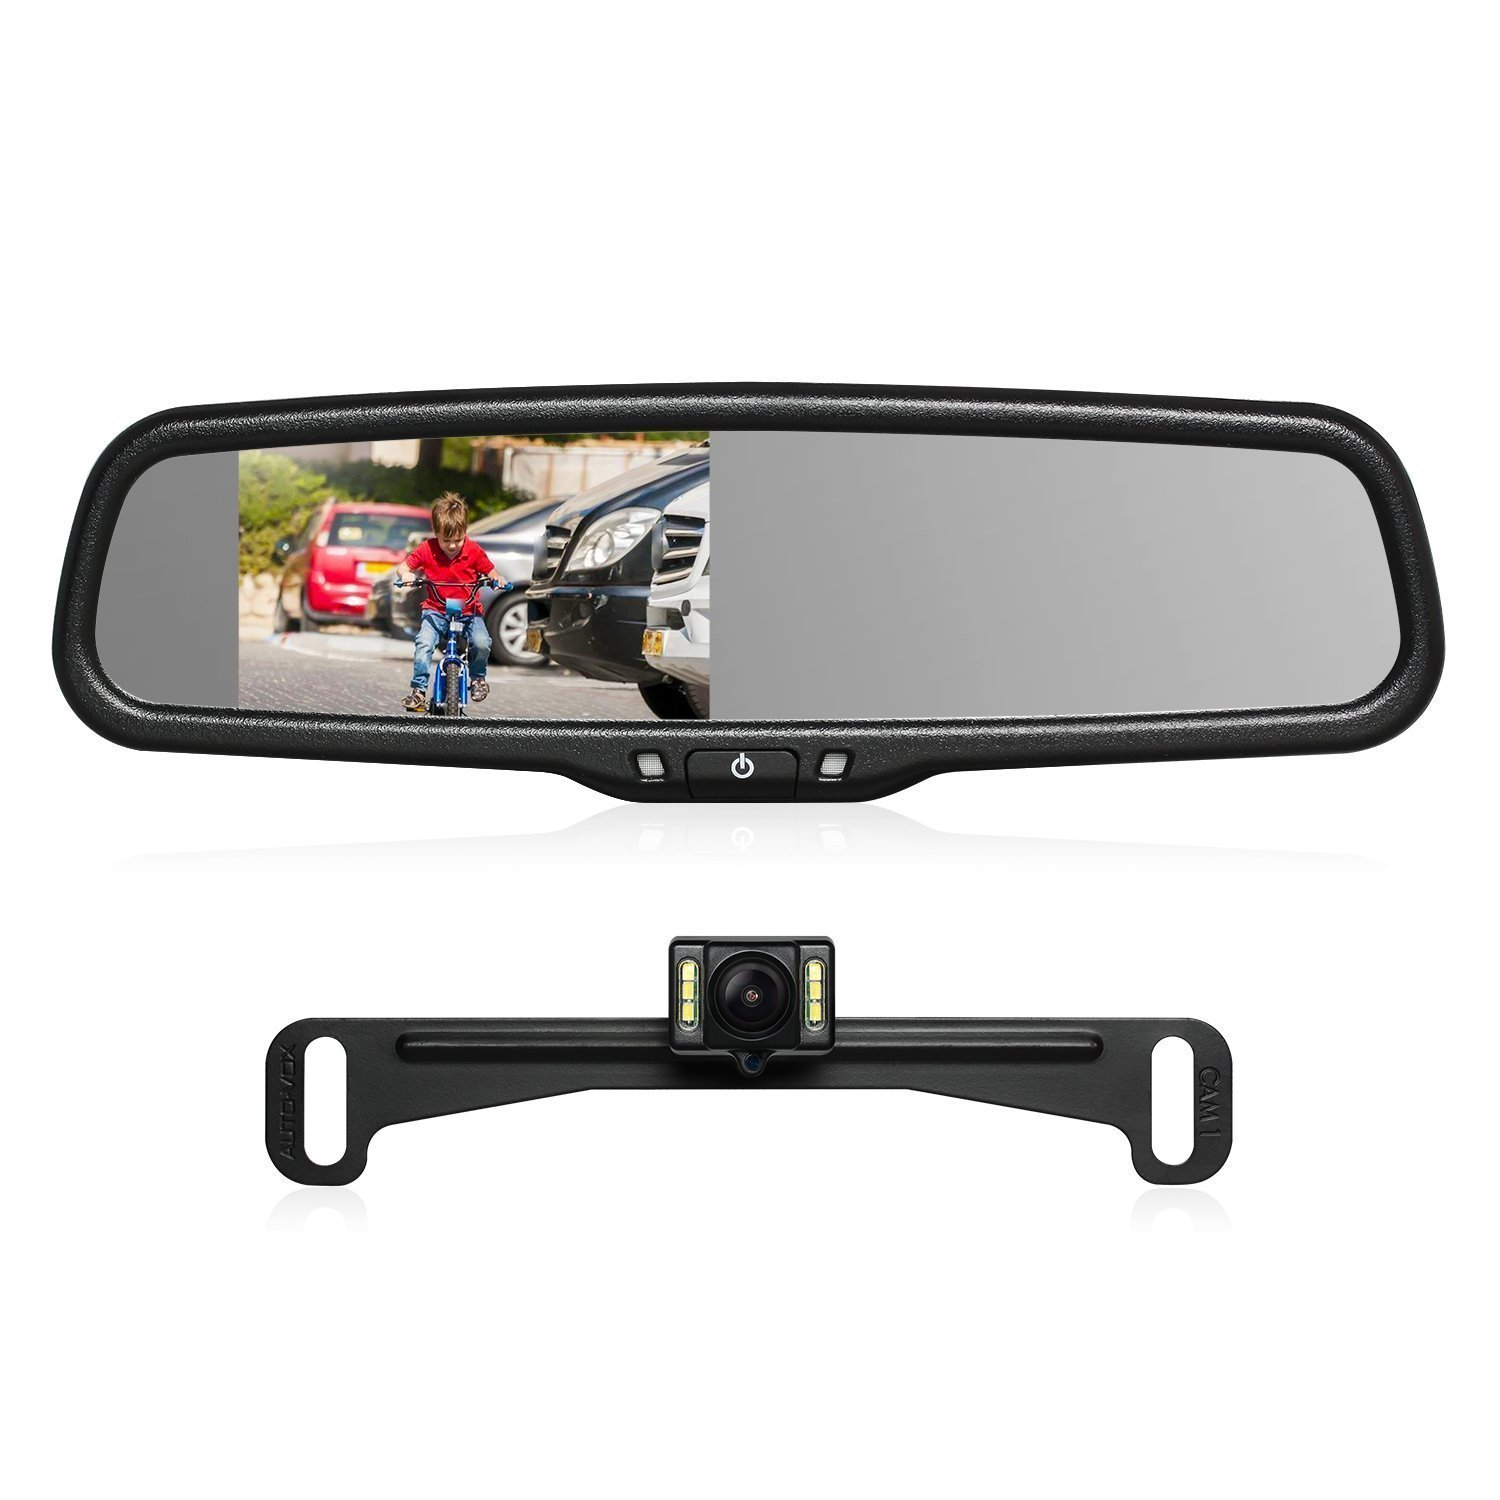 AUTO-VOX T2 Backup Camera Kit,OEM Rear View Mirror Monitor with IP68 Waterproof Rear View Camera,Super Night Vision for Parking & Reversing by AUTO-VOX